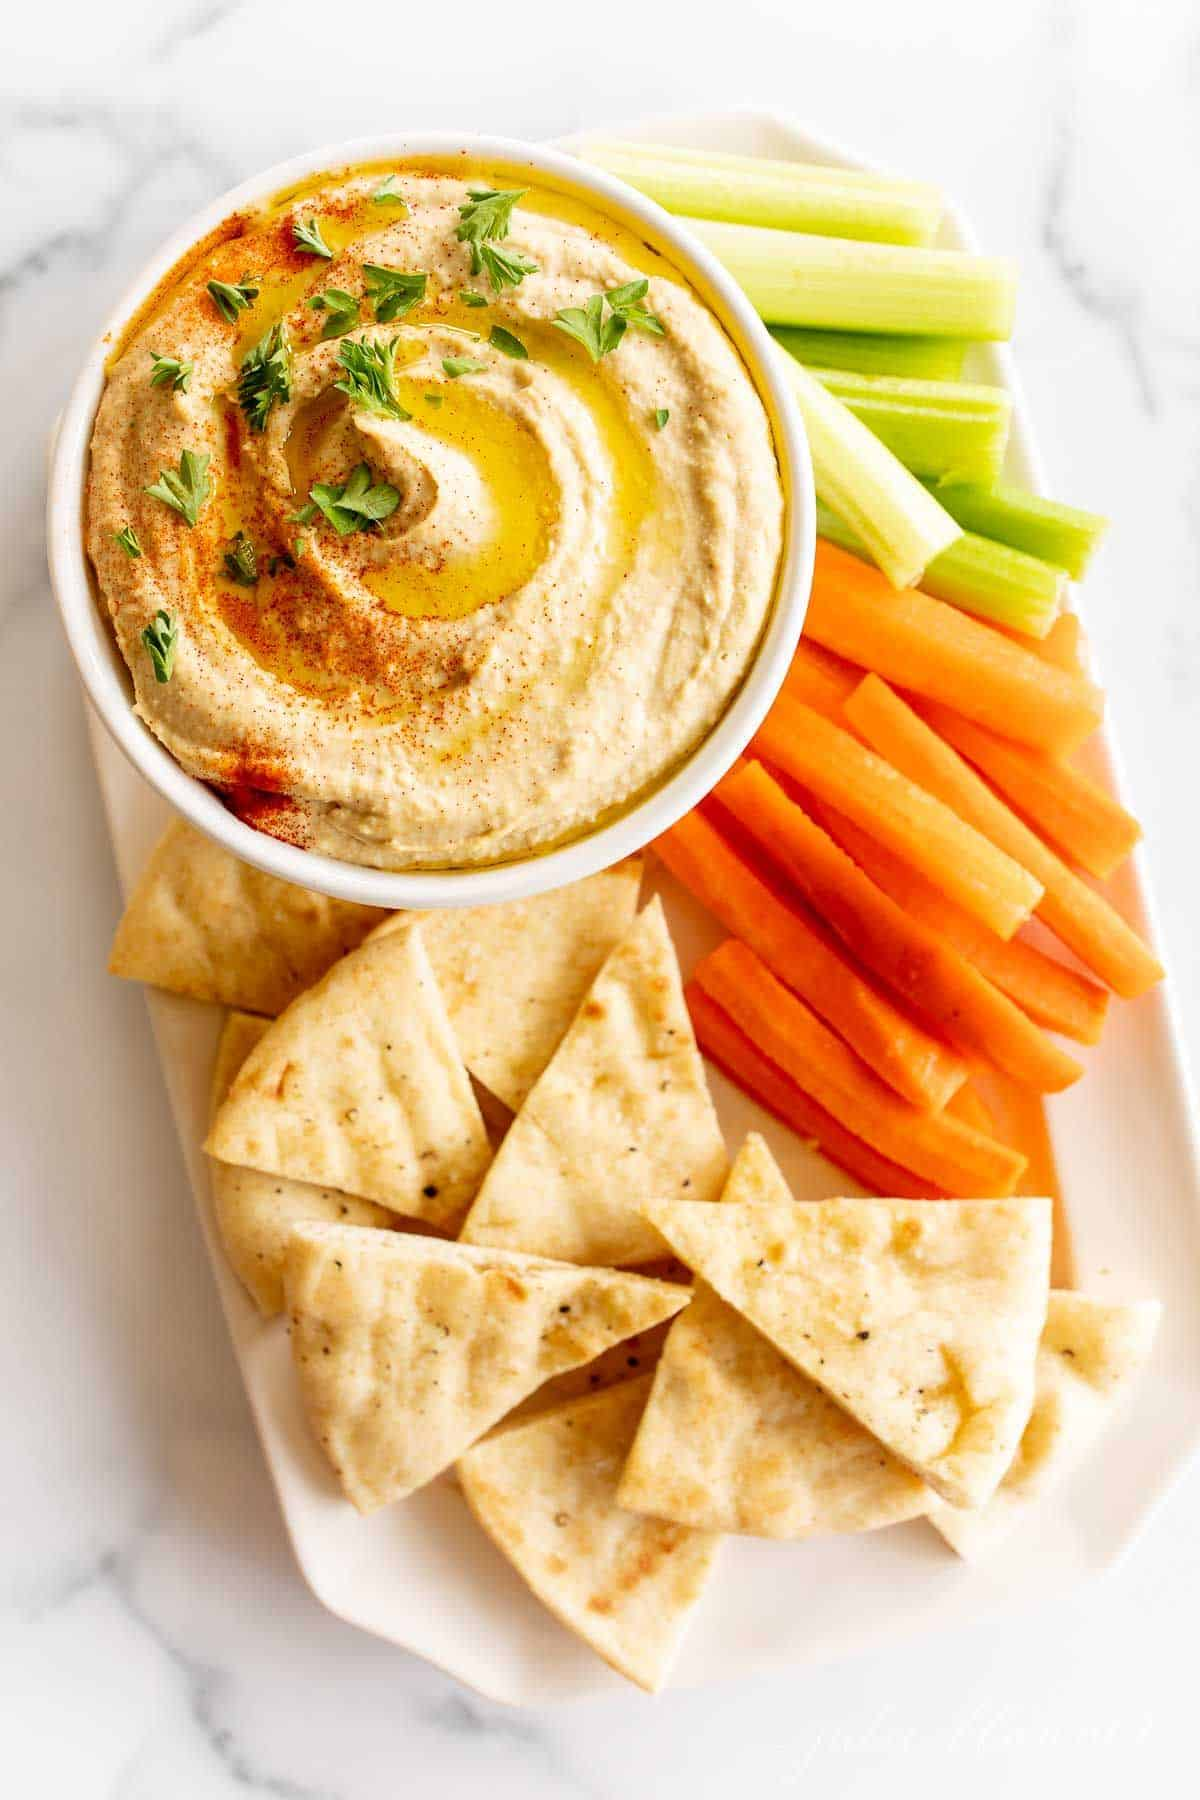 A bowl full of homemade hummus sitting on a platter of vegetables for dipping.